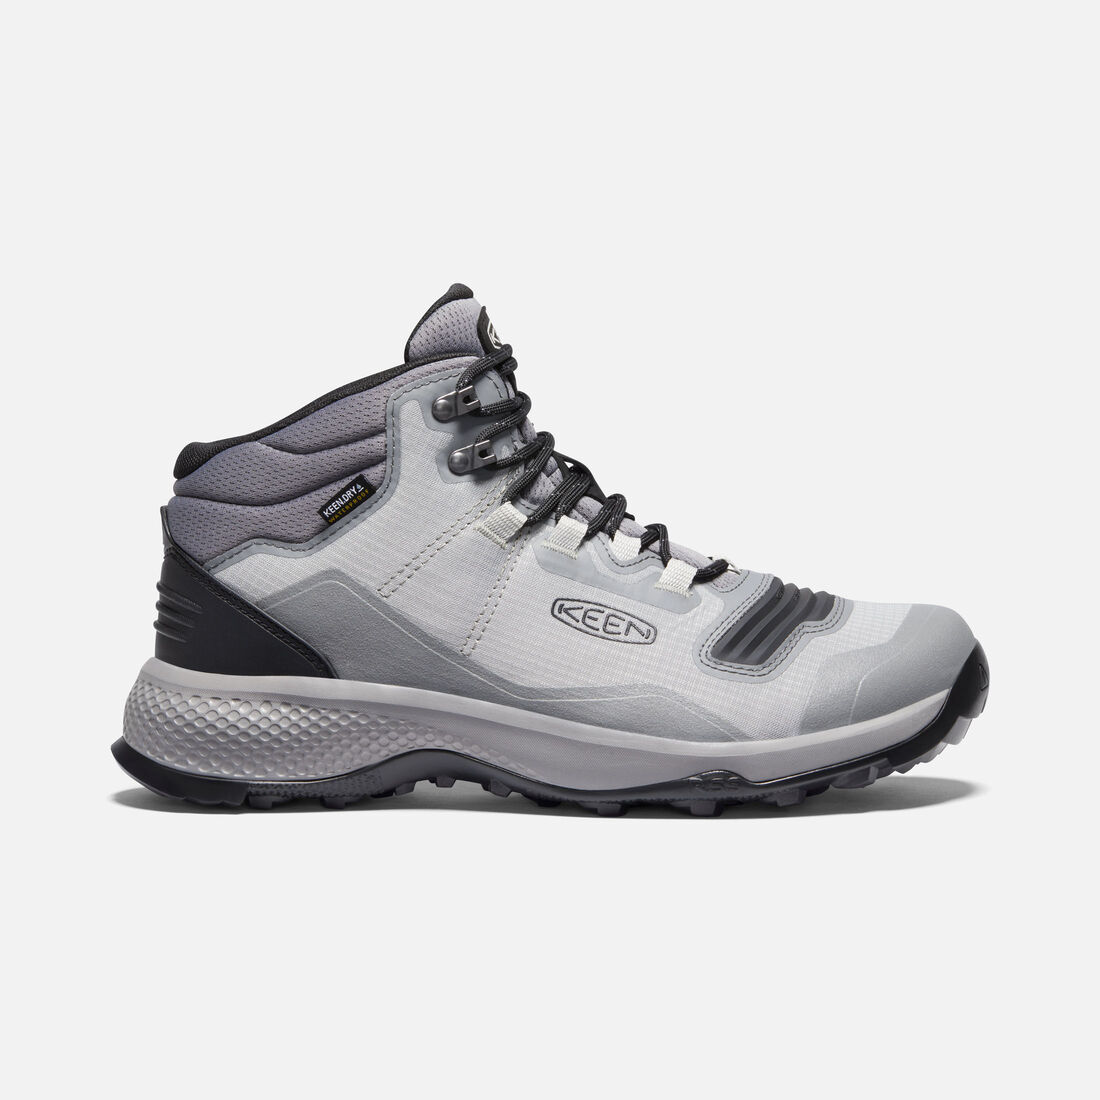 Men's Tempo Flex Waterproof Boot in Drizzle/Black - large view.